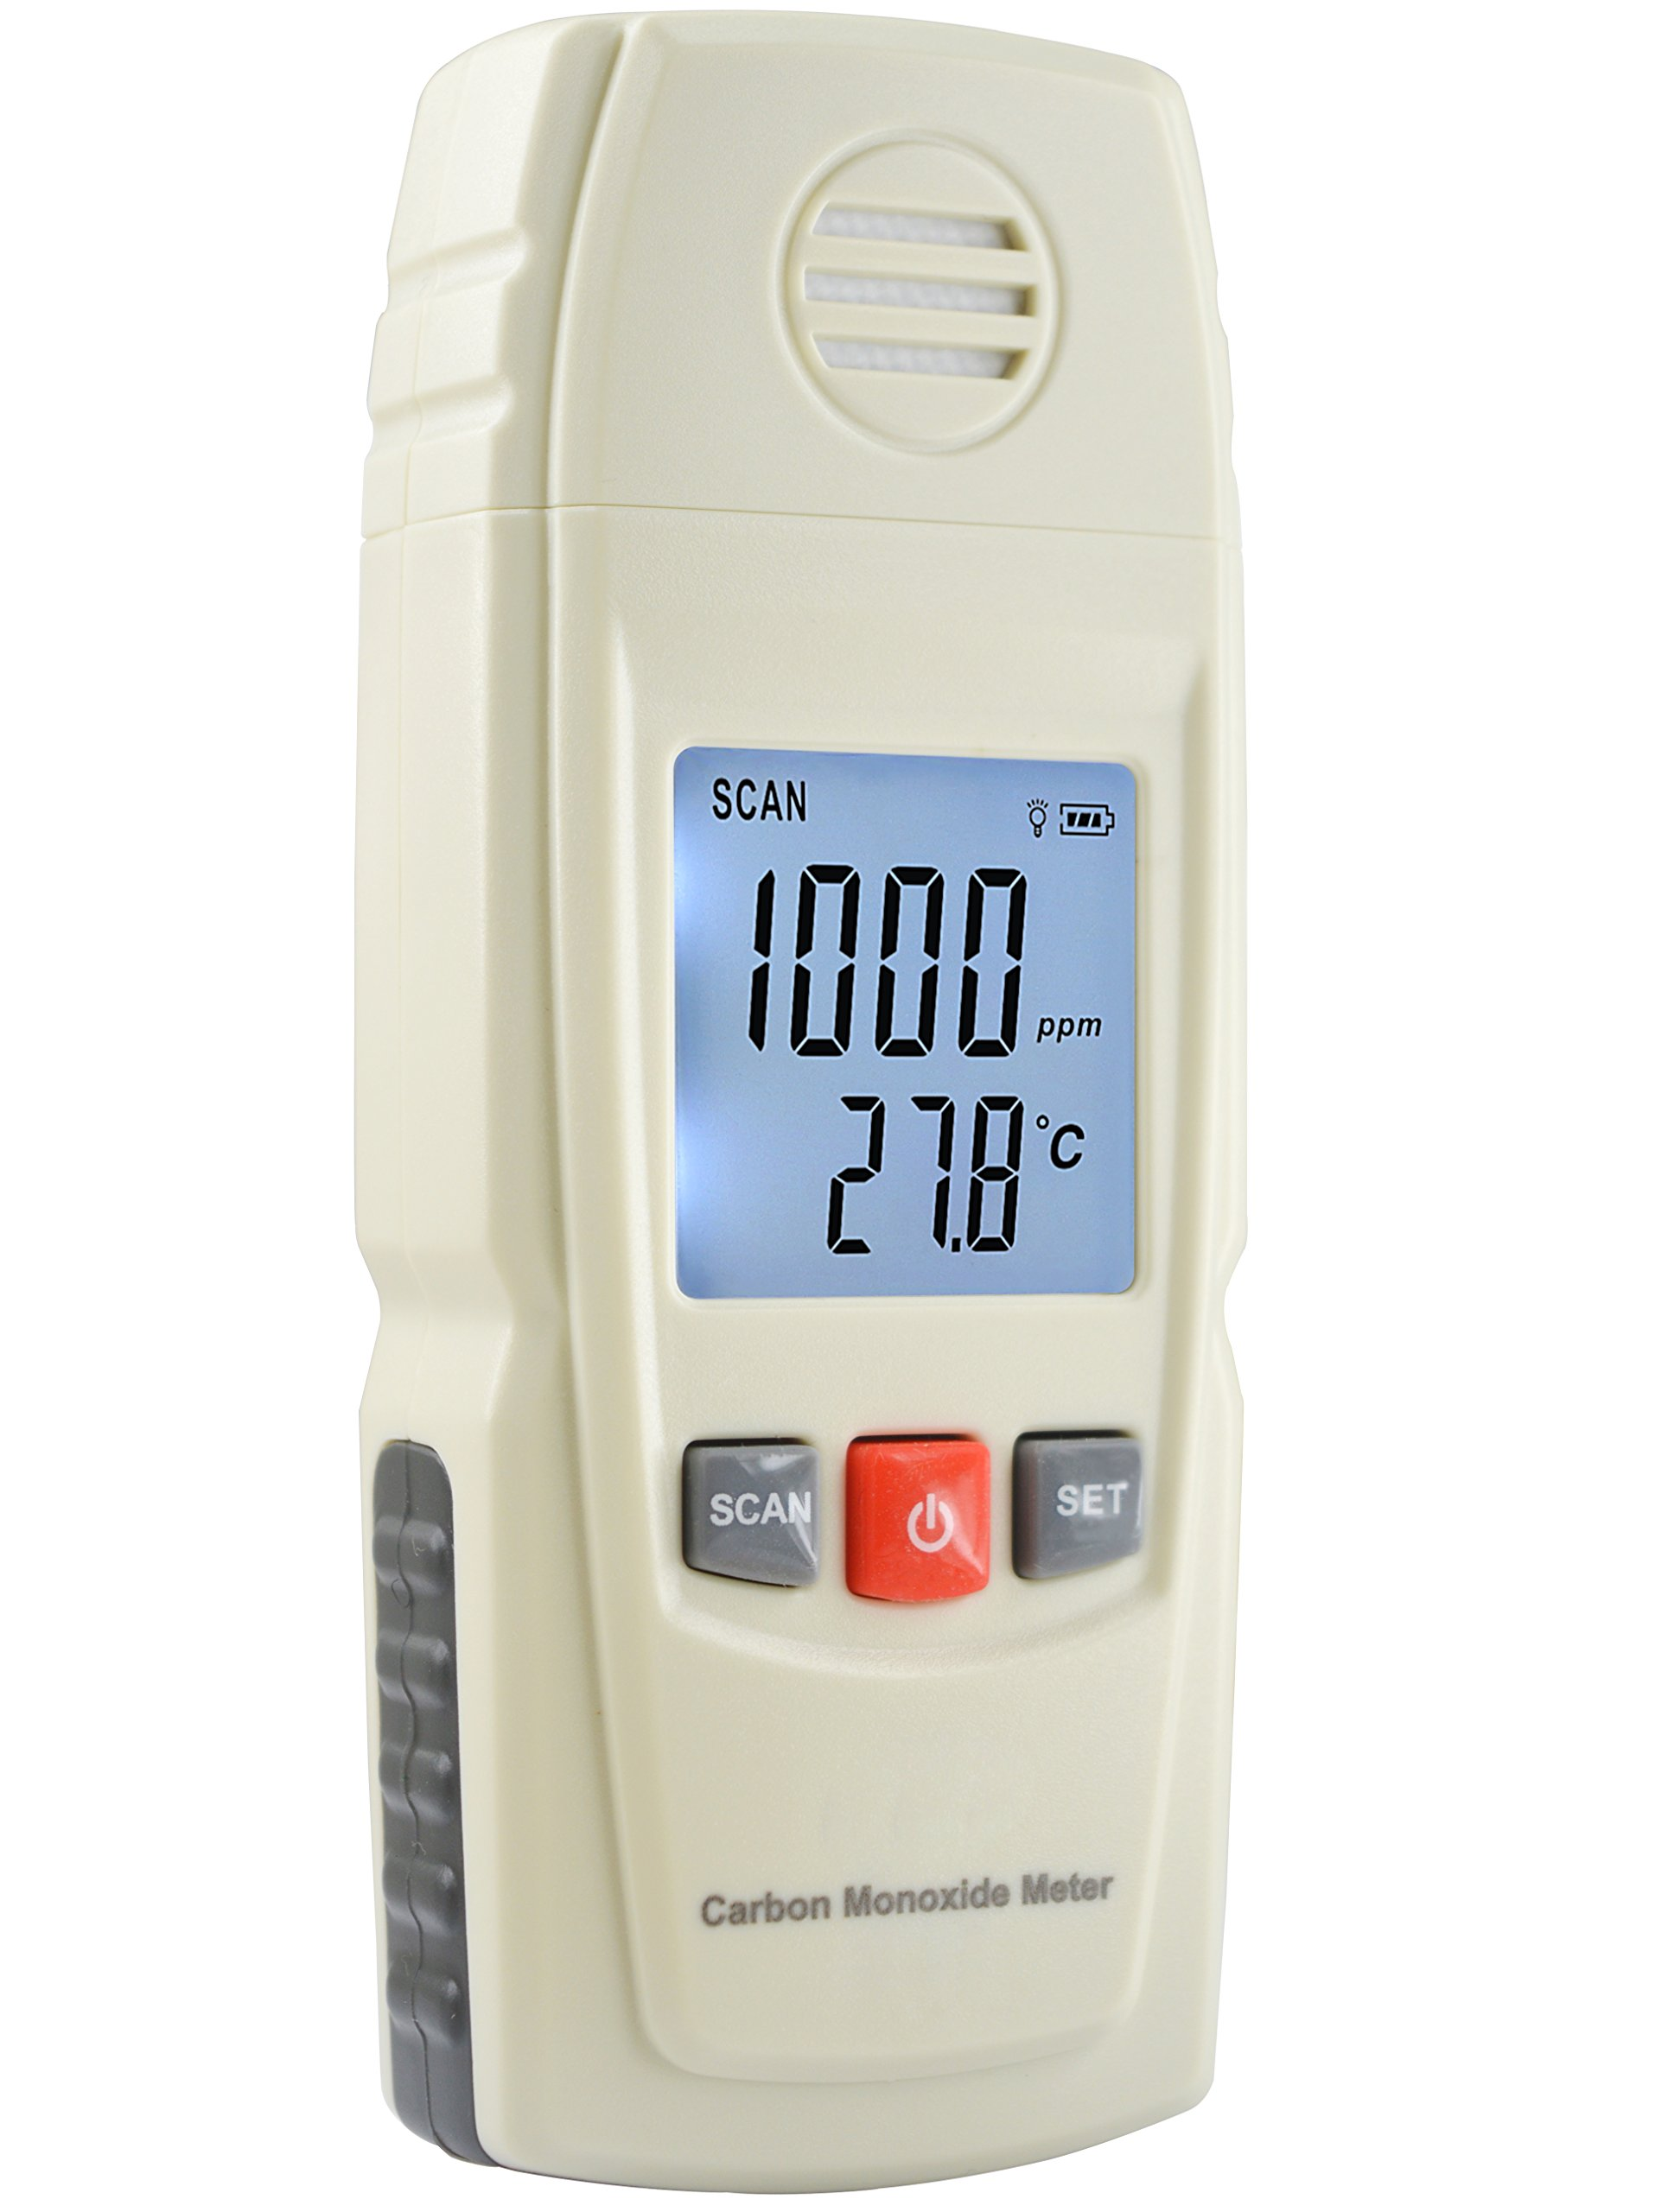 Basic Carbon Monoxide Handheld CO Meter by FORENSICS | Adjustable Alarms | Large Display | Measure up to 1000ppm | Home & Light Industrial Use |